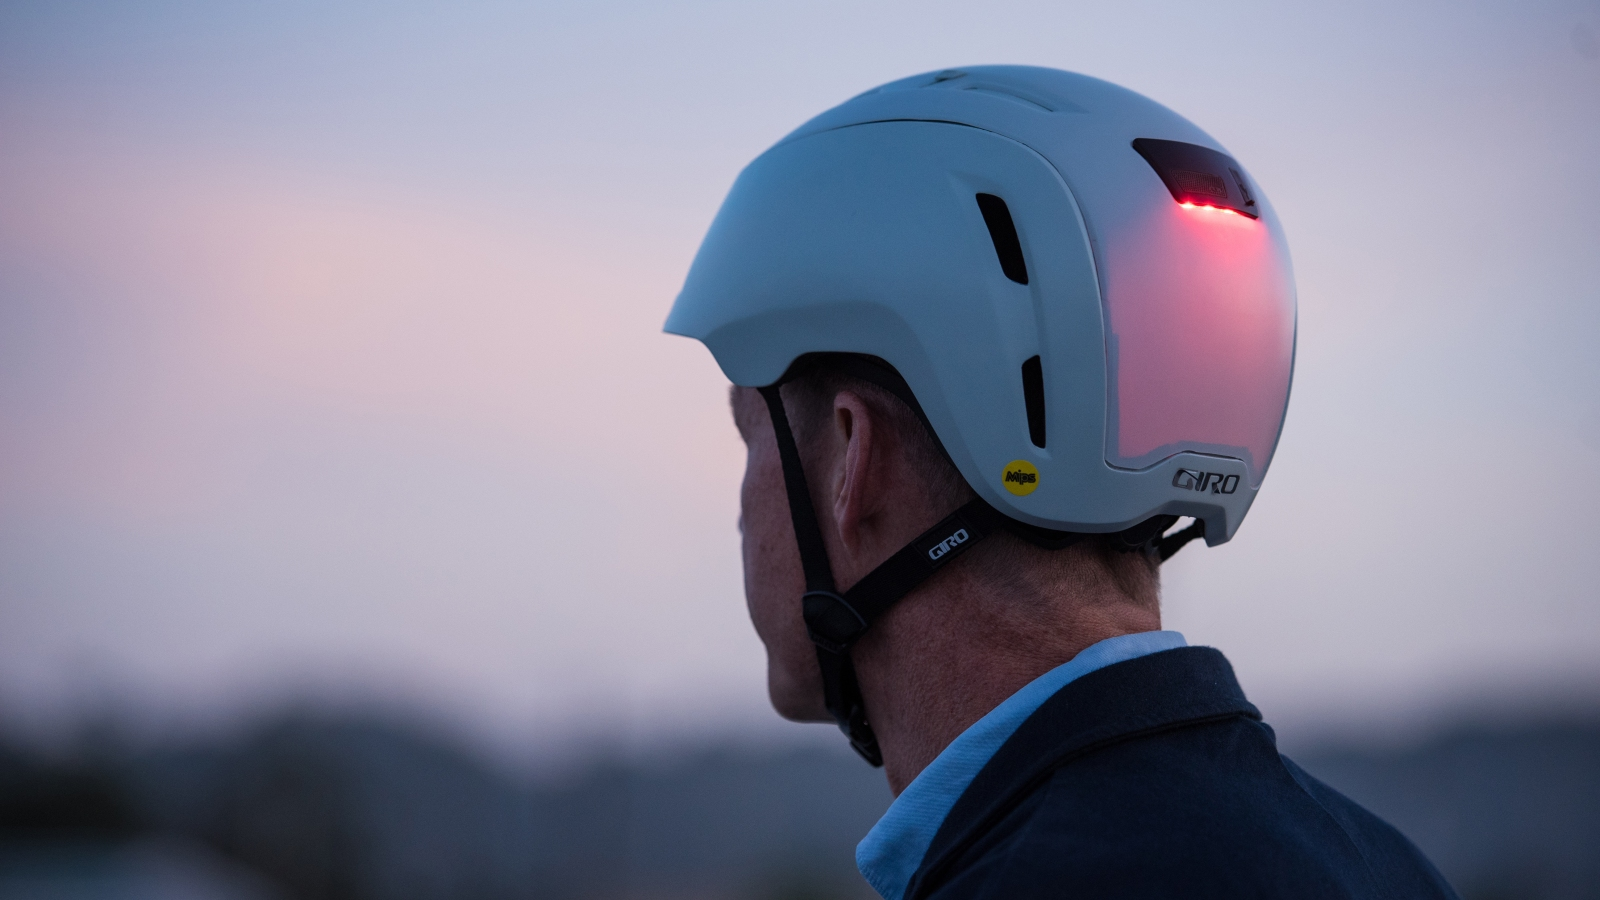 d8f8e8c6032 10 Great Cycling Accessories to Upgrade Your Bike Commute